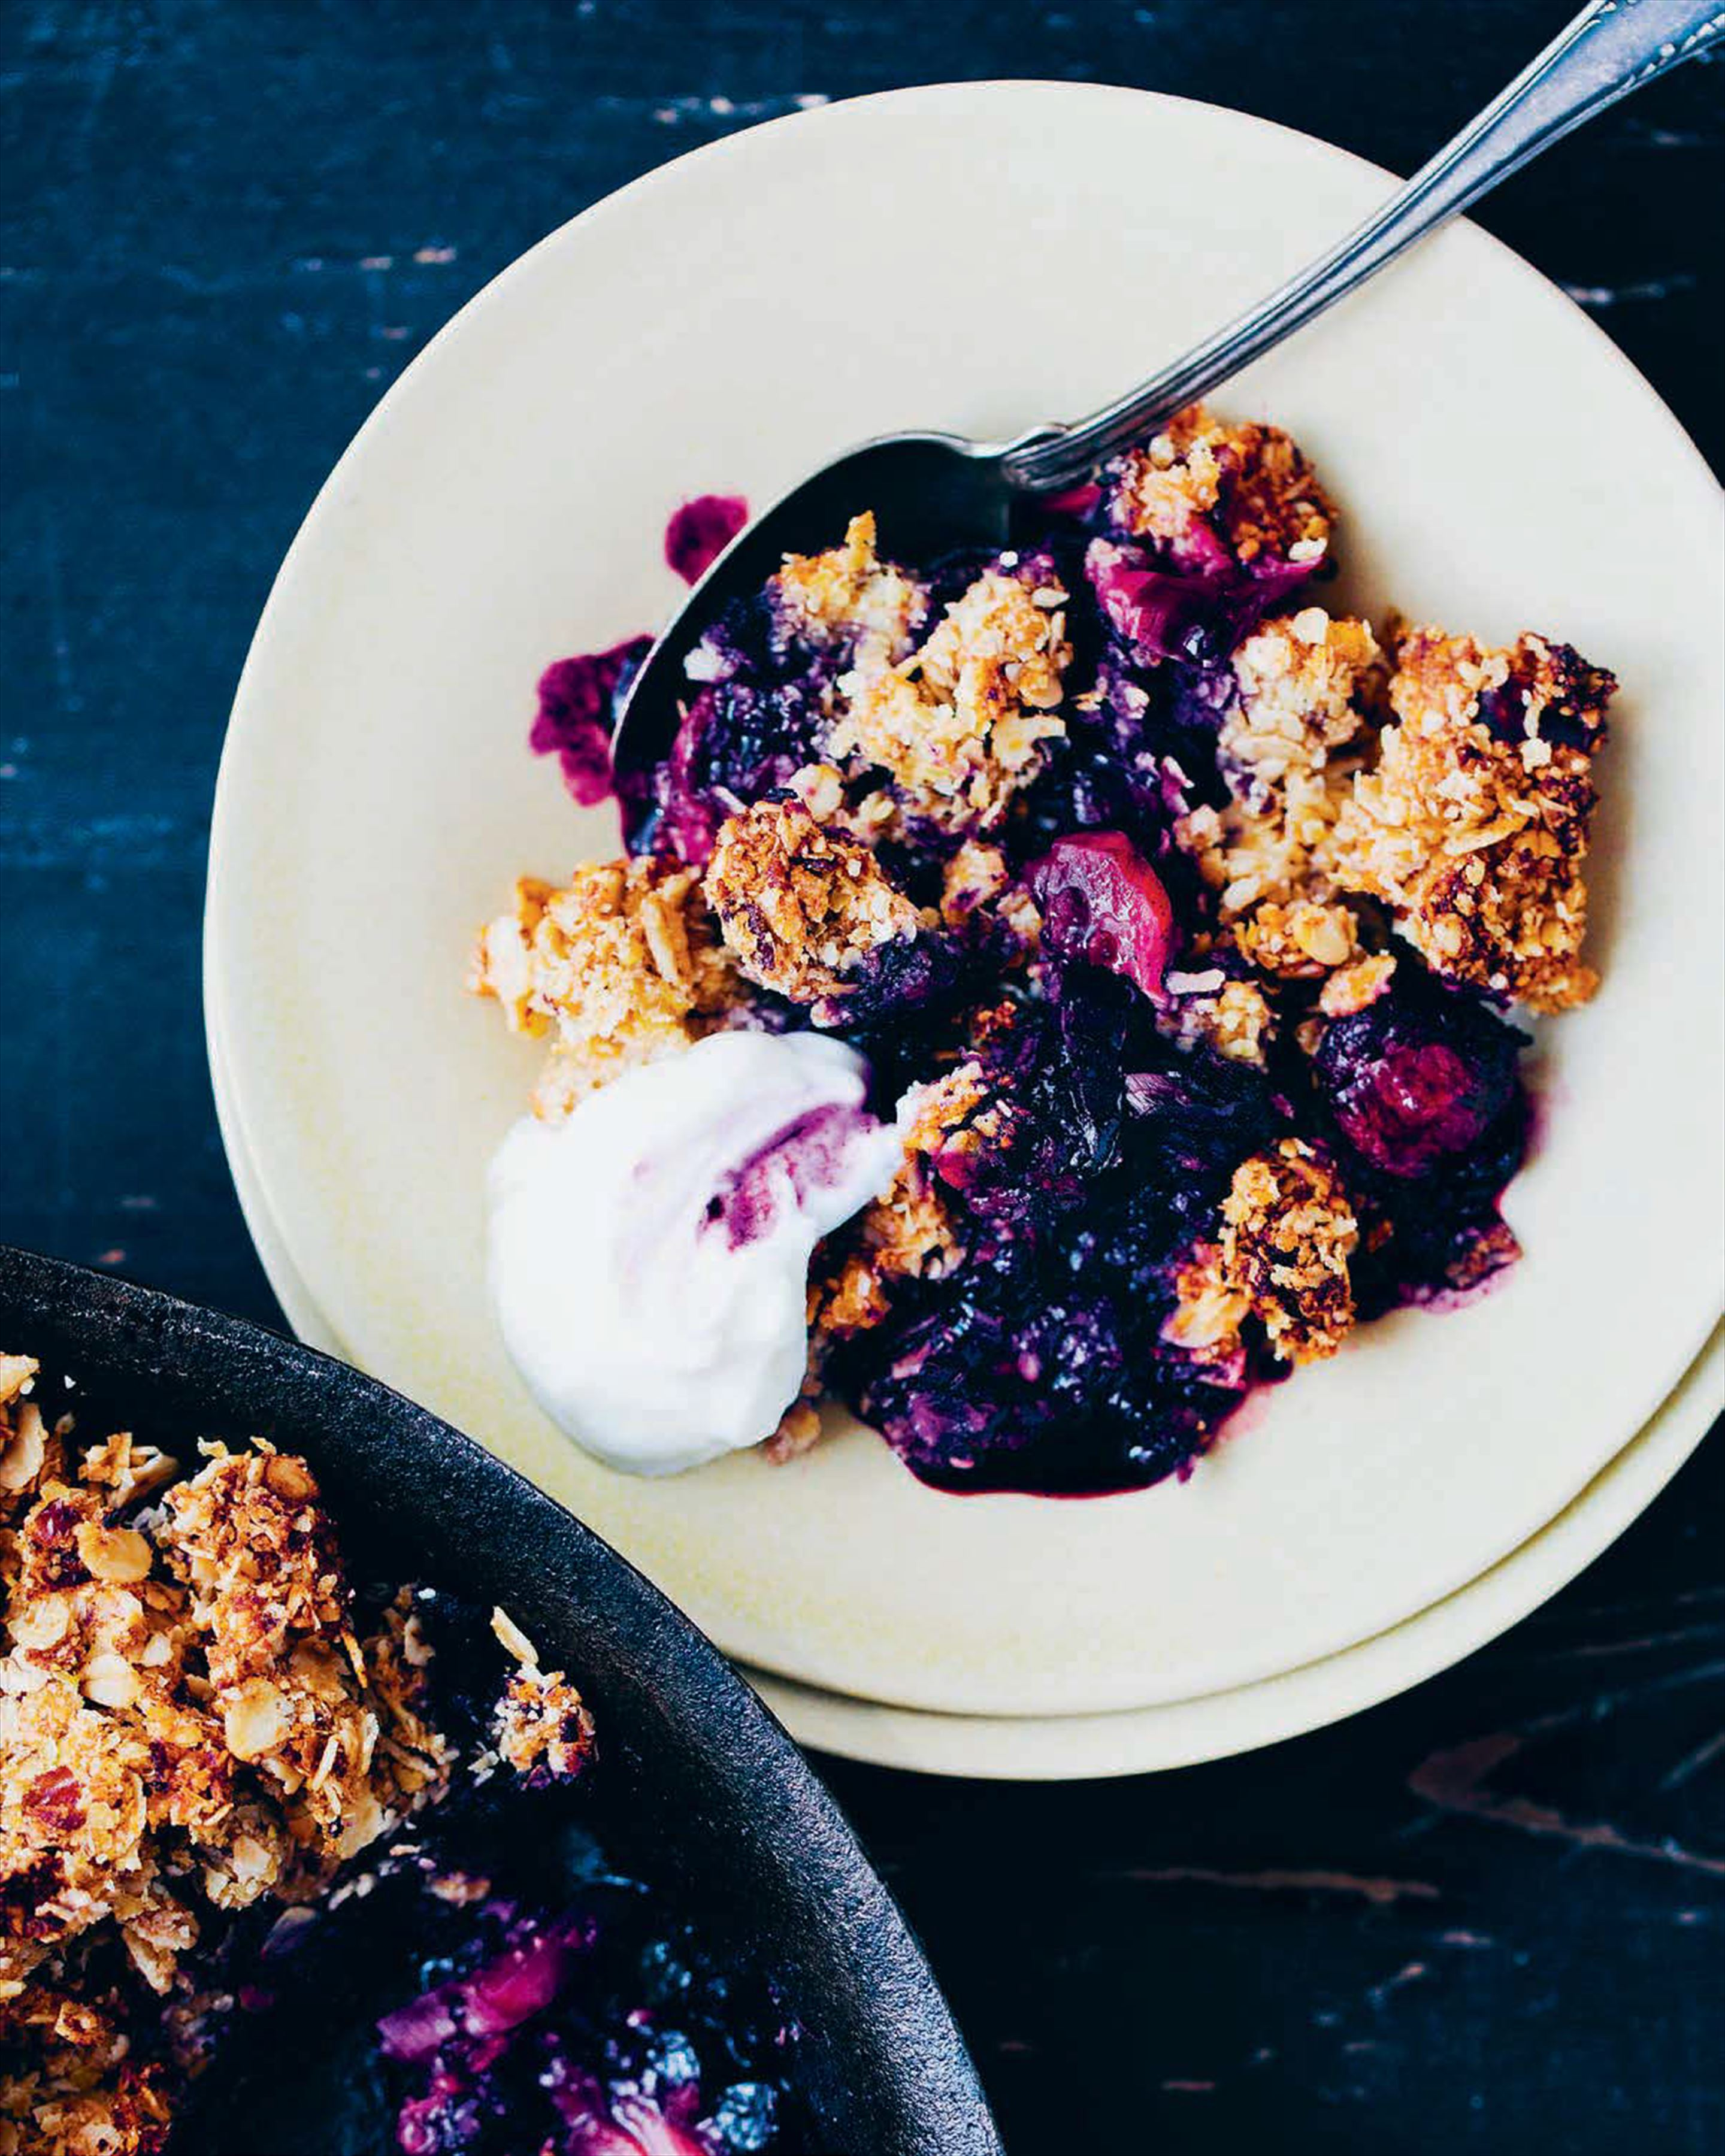 Berry, rhubarb and date crumble